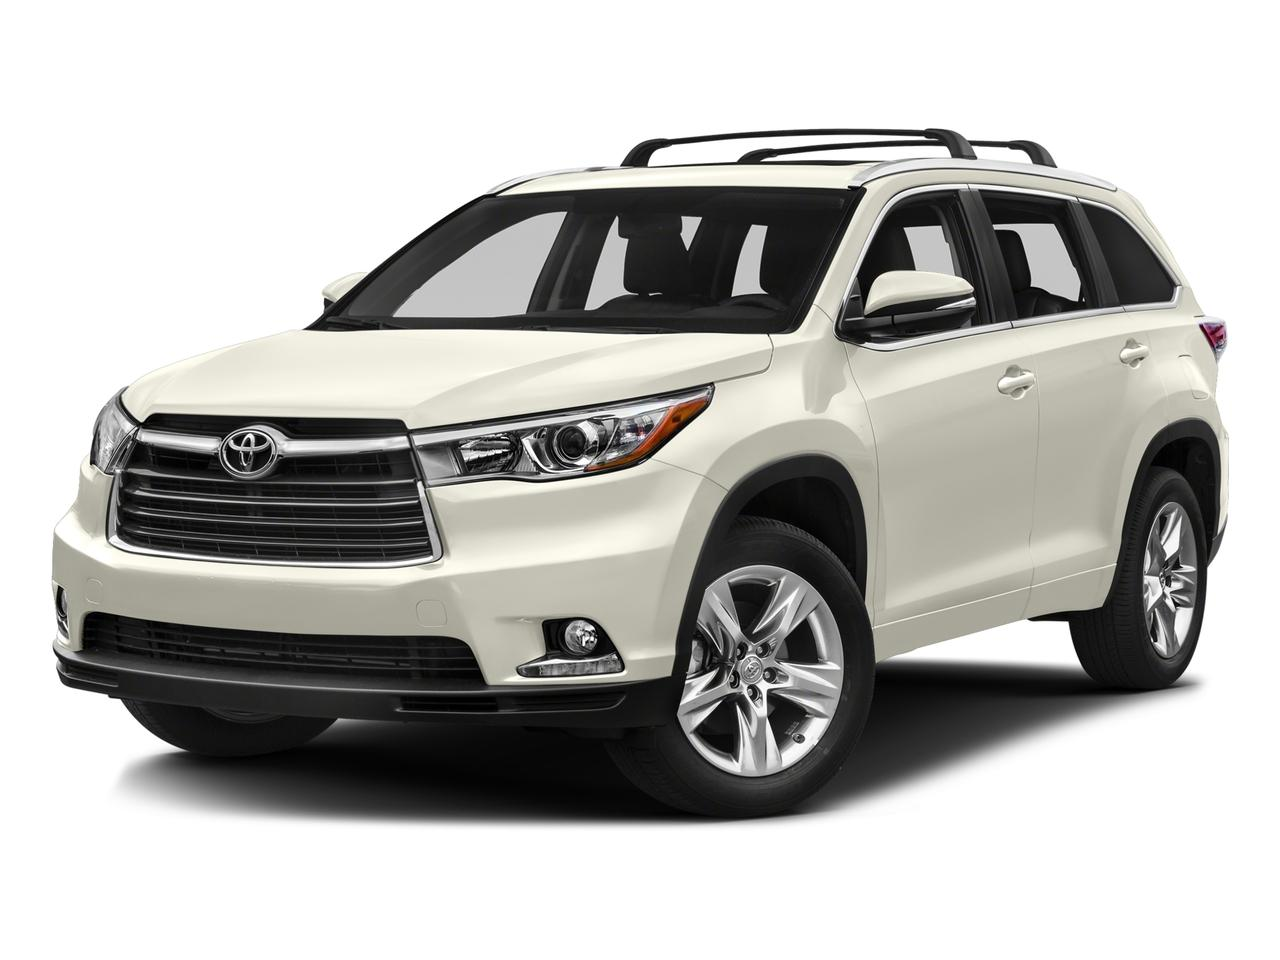 2016 Toyota Highlander Vehicle Photo in TEMPLE, TX 76504-3447